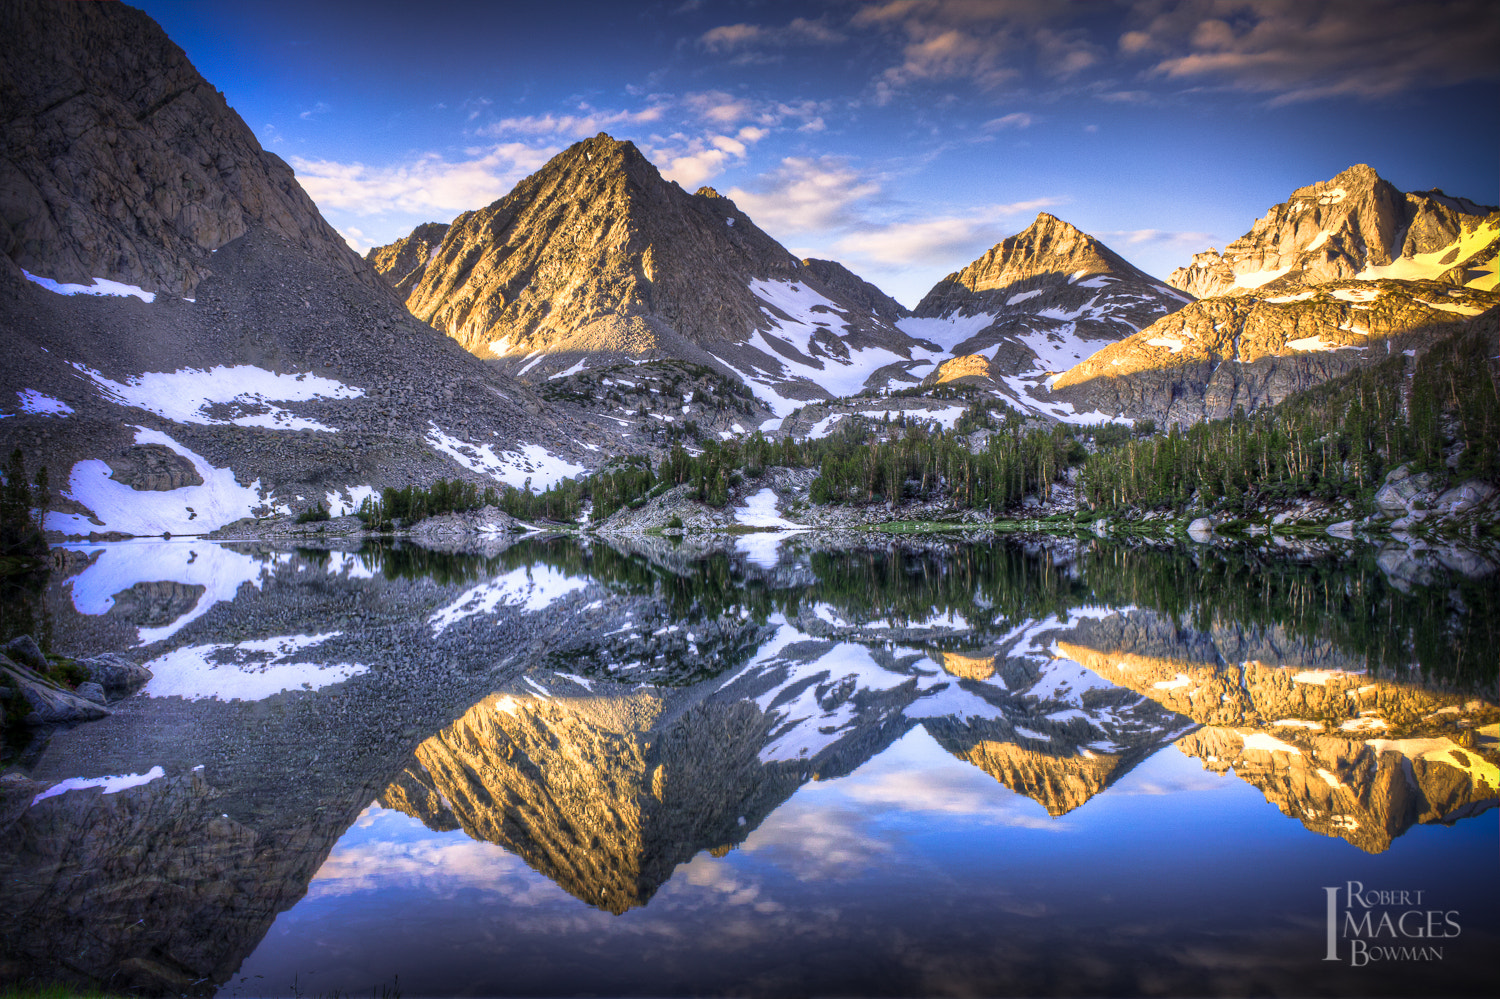 Photograph Sierra Morning by Bob Bowman on 500px